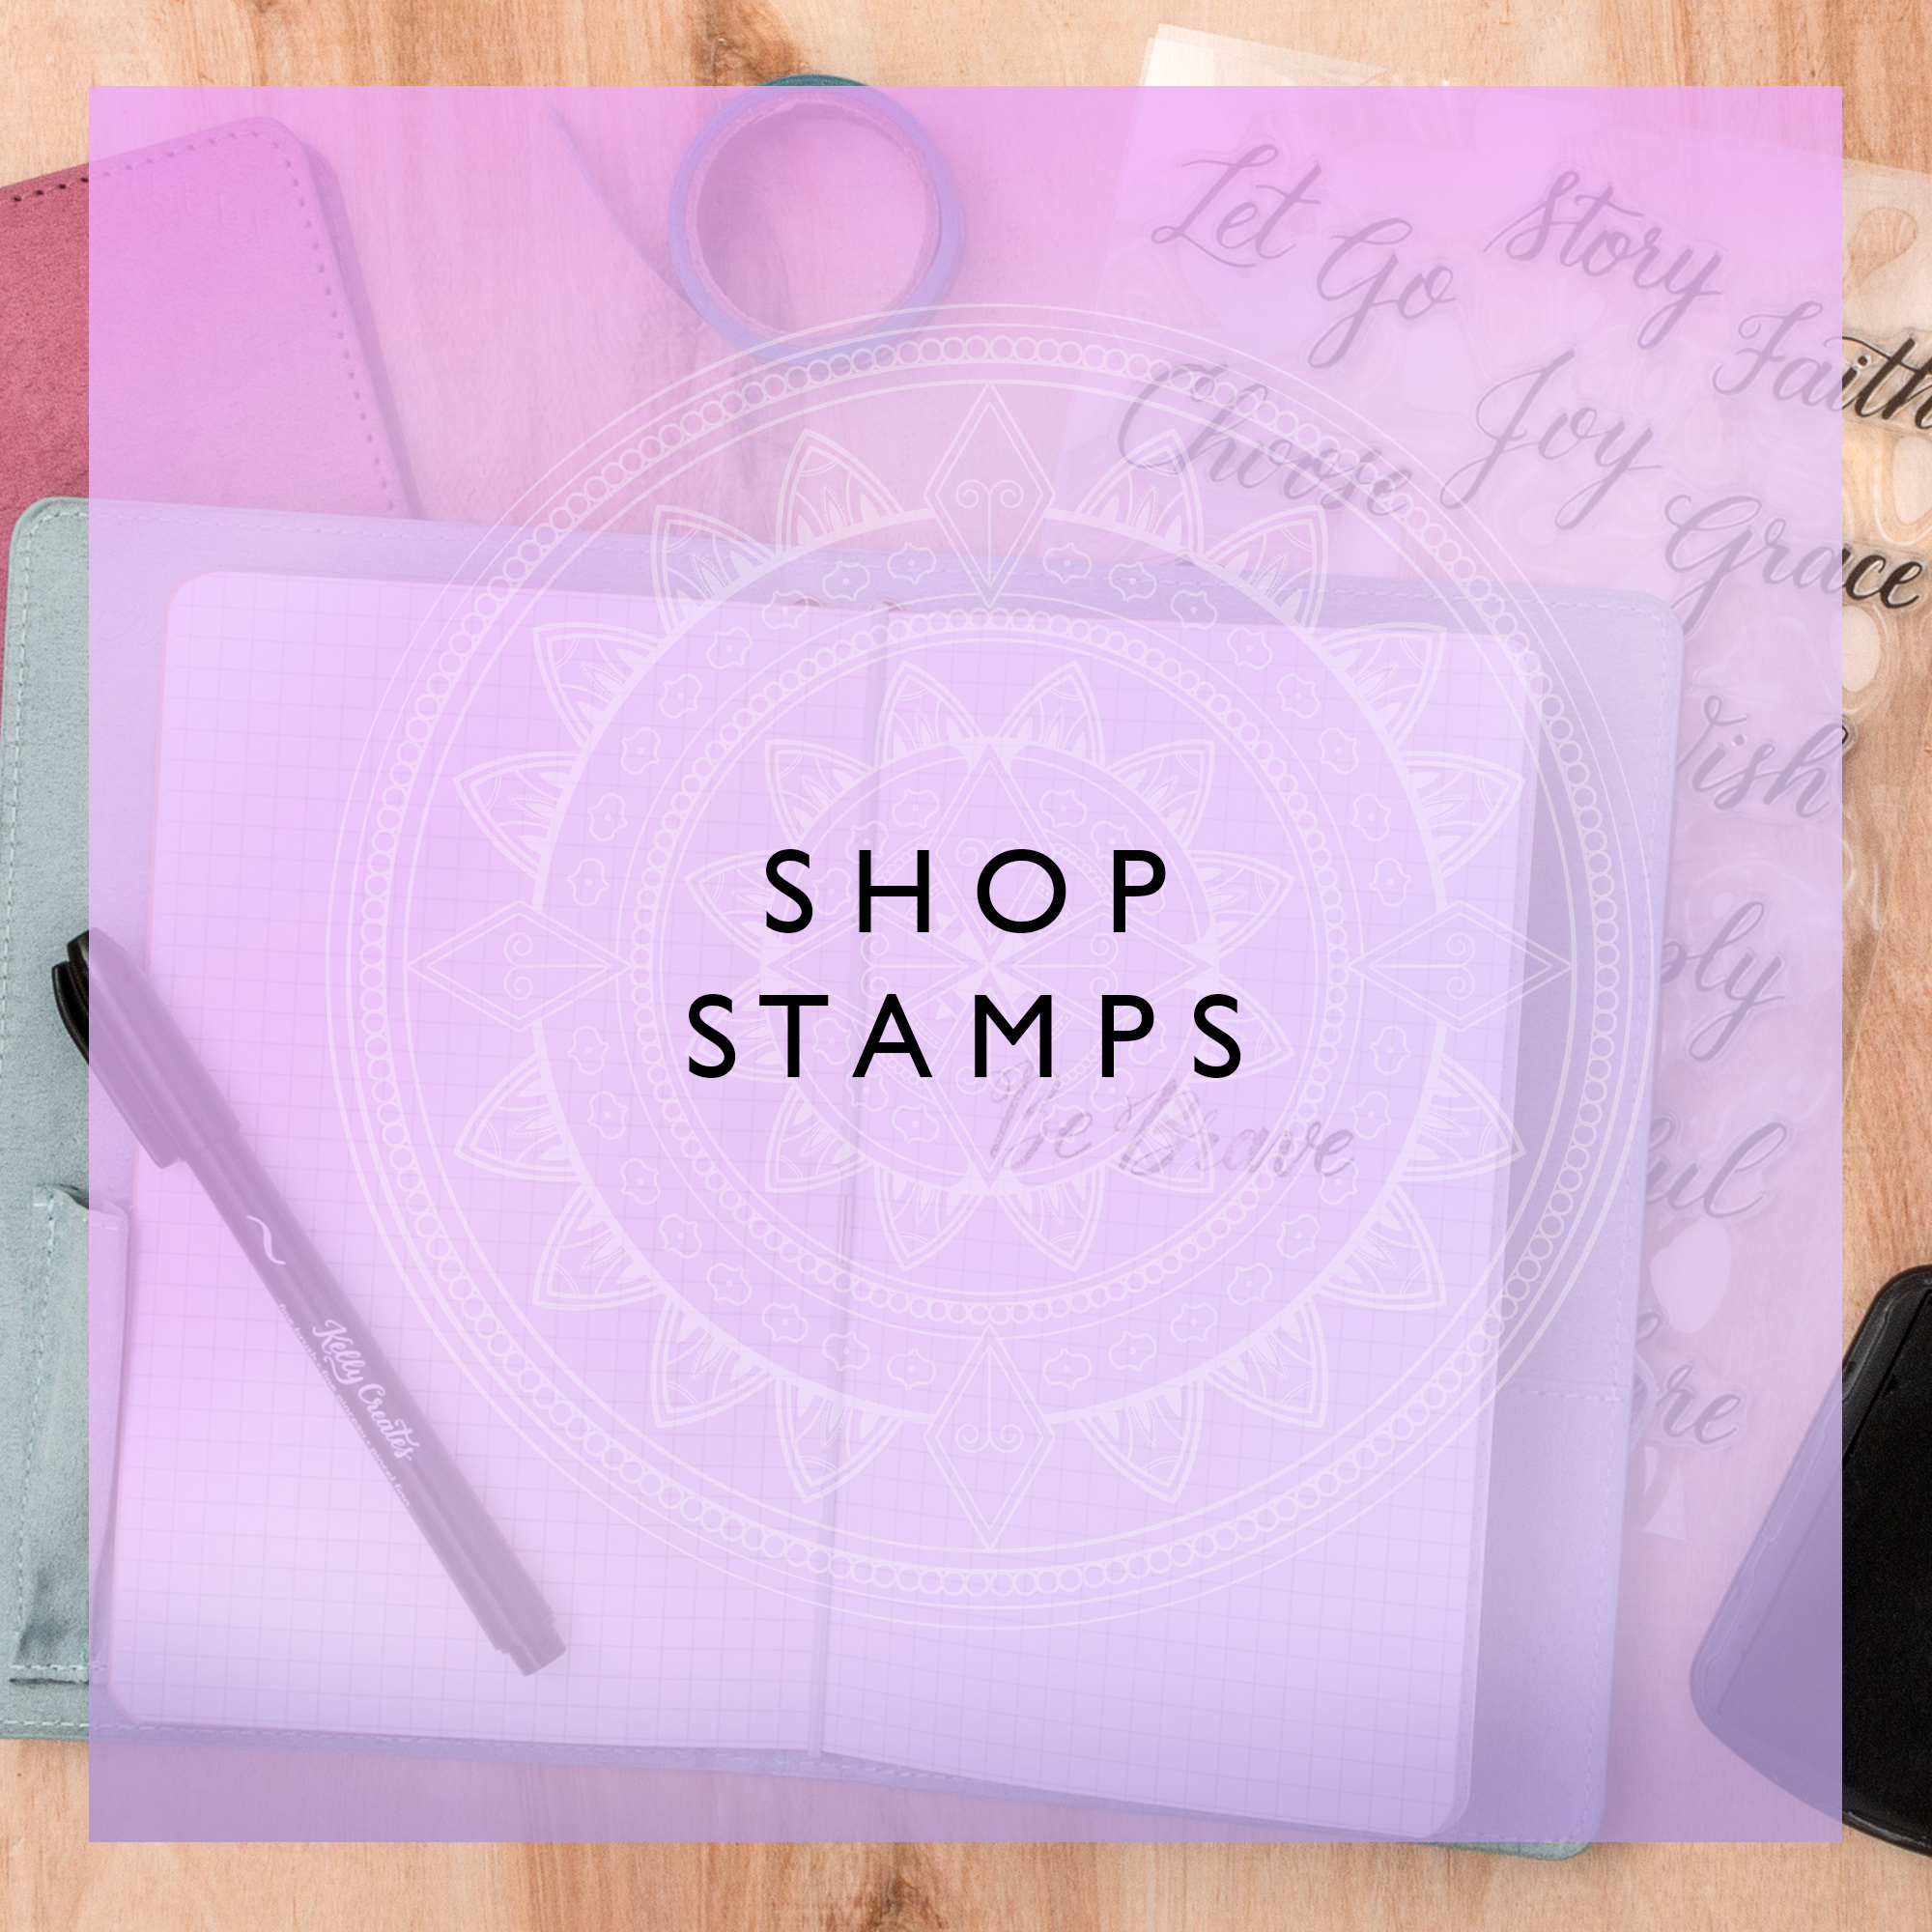 SHOP STAMPS GRAPHIC